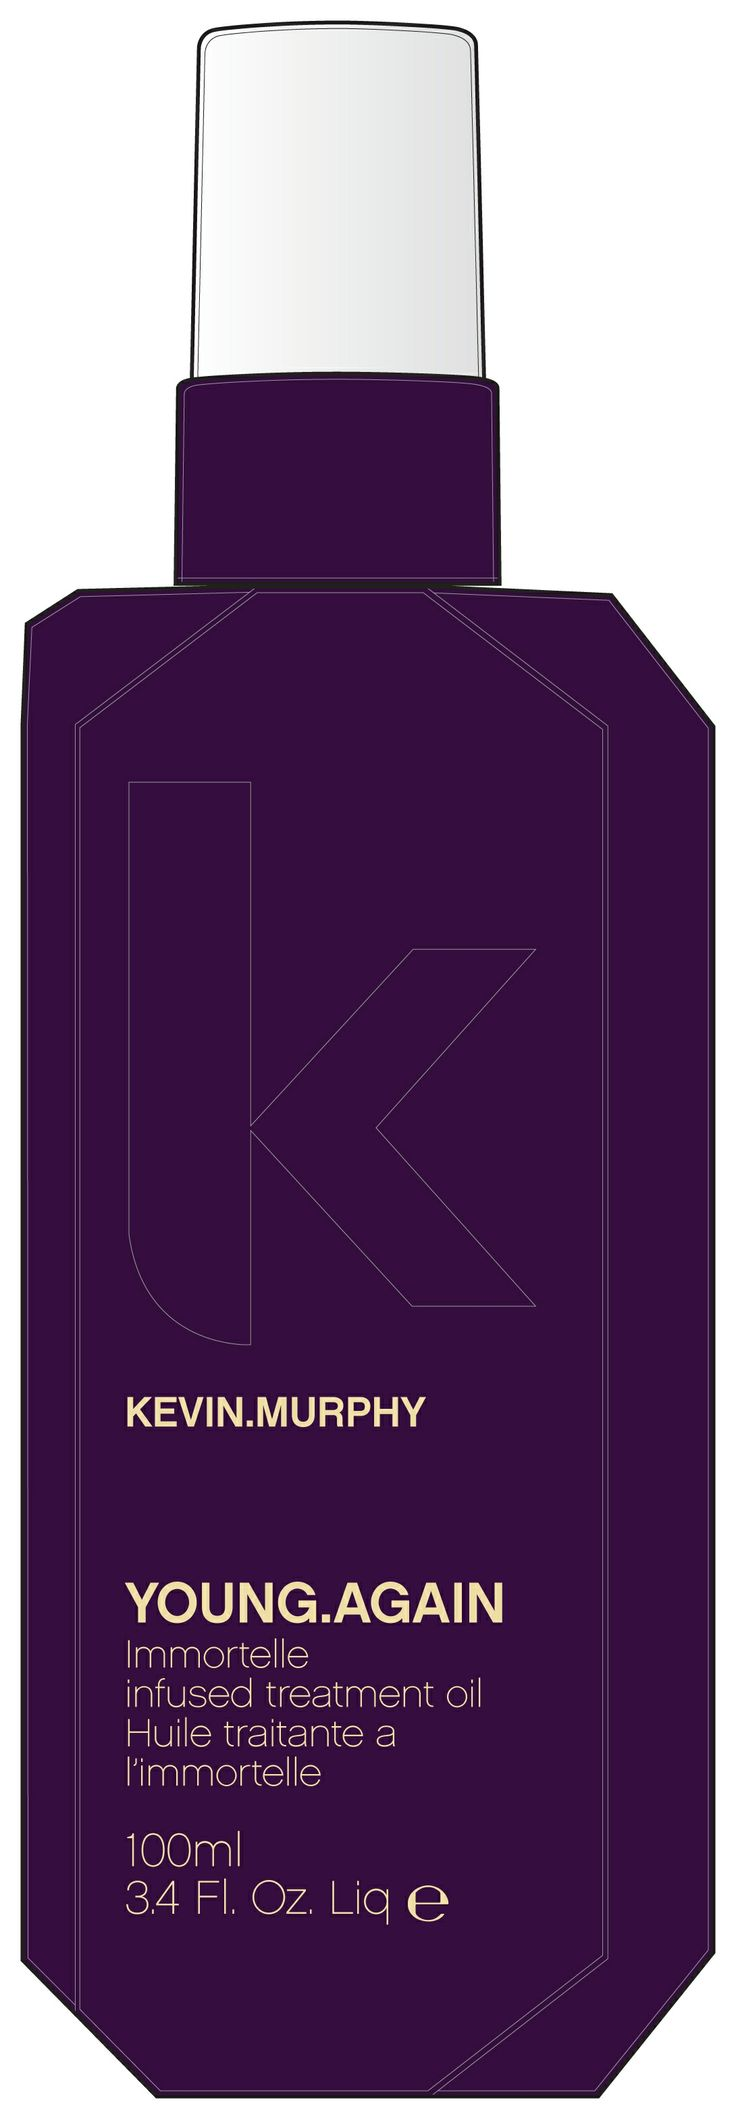 Kevin murphy young again